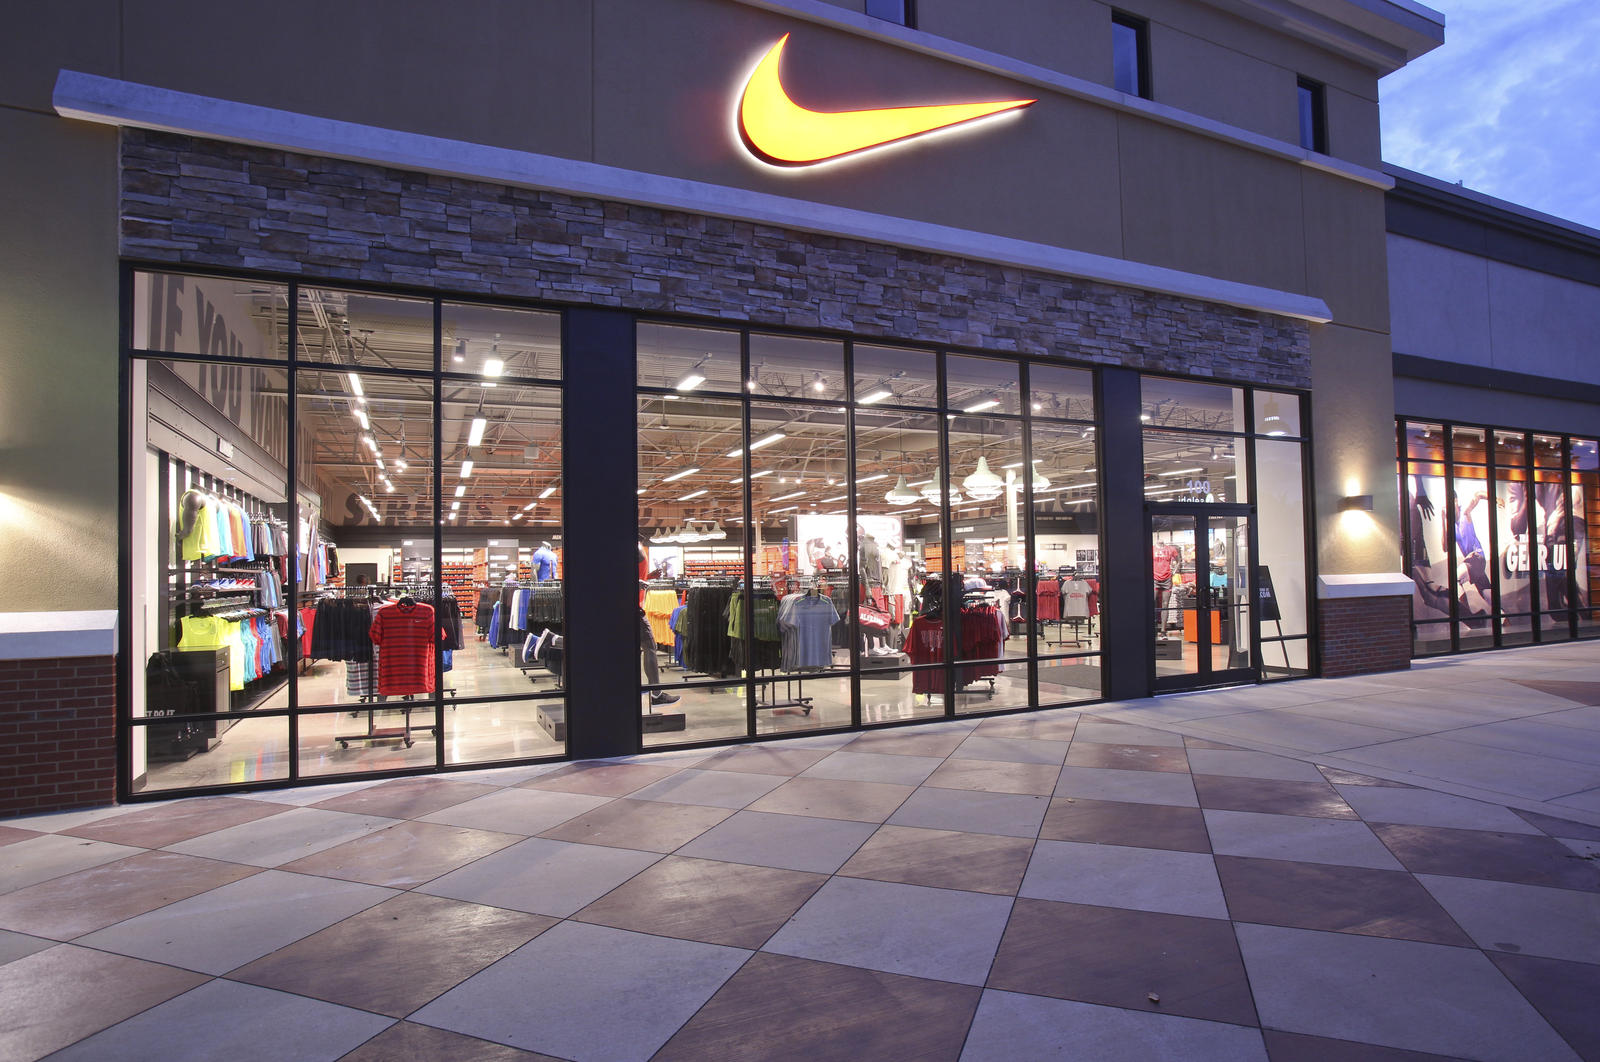 Nike Outlet Store - 80% OFF Cheap Nike Shoes Sale From Nike Factory Outlet Store! Cheap Nike Free Run Shoes,Nike Air Max,Nike Air Force 1,Roshe Run etc. Huge Discount & Great Selection!